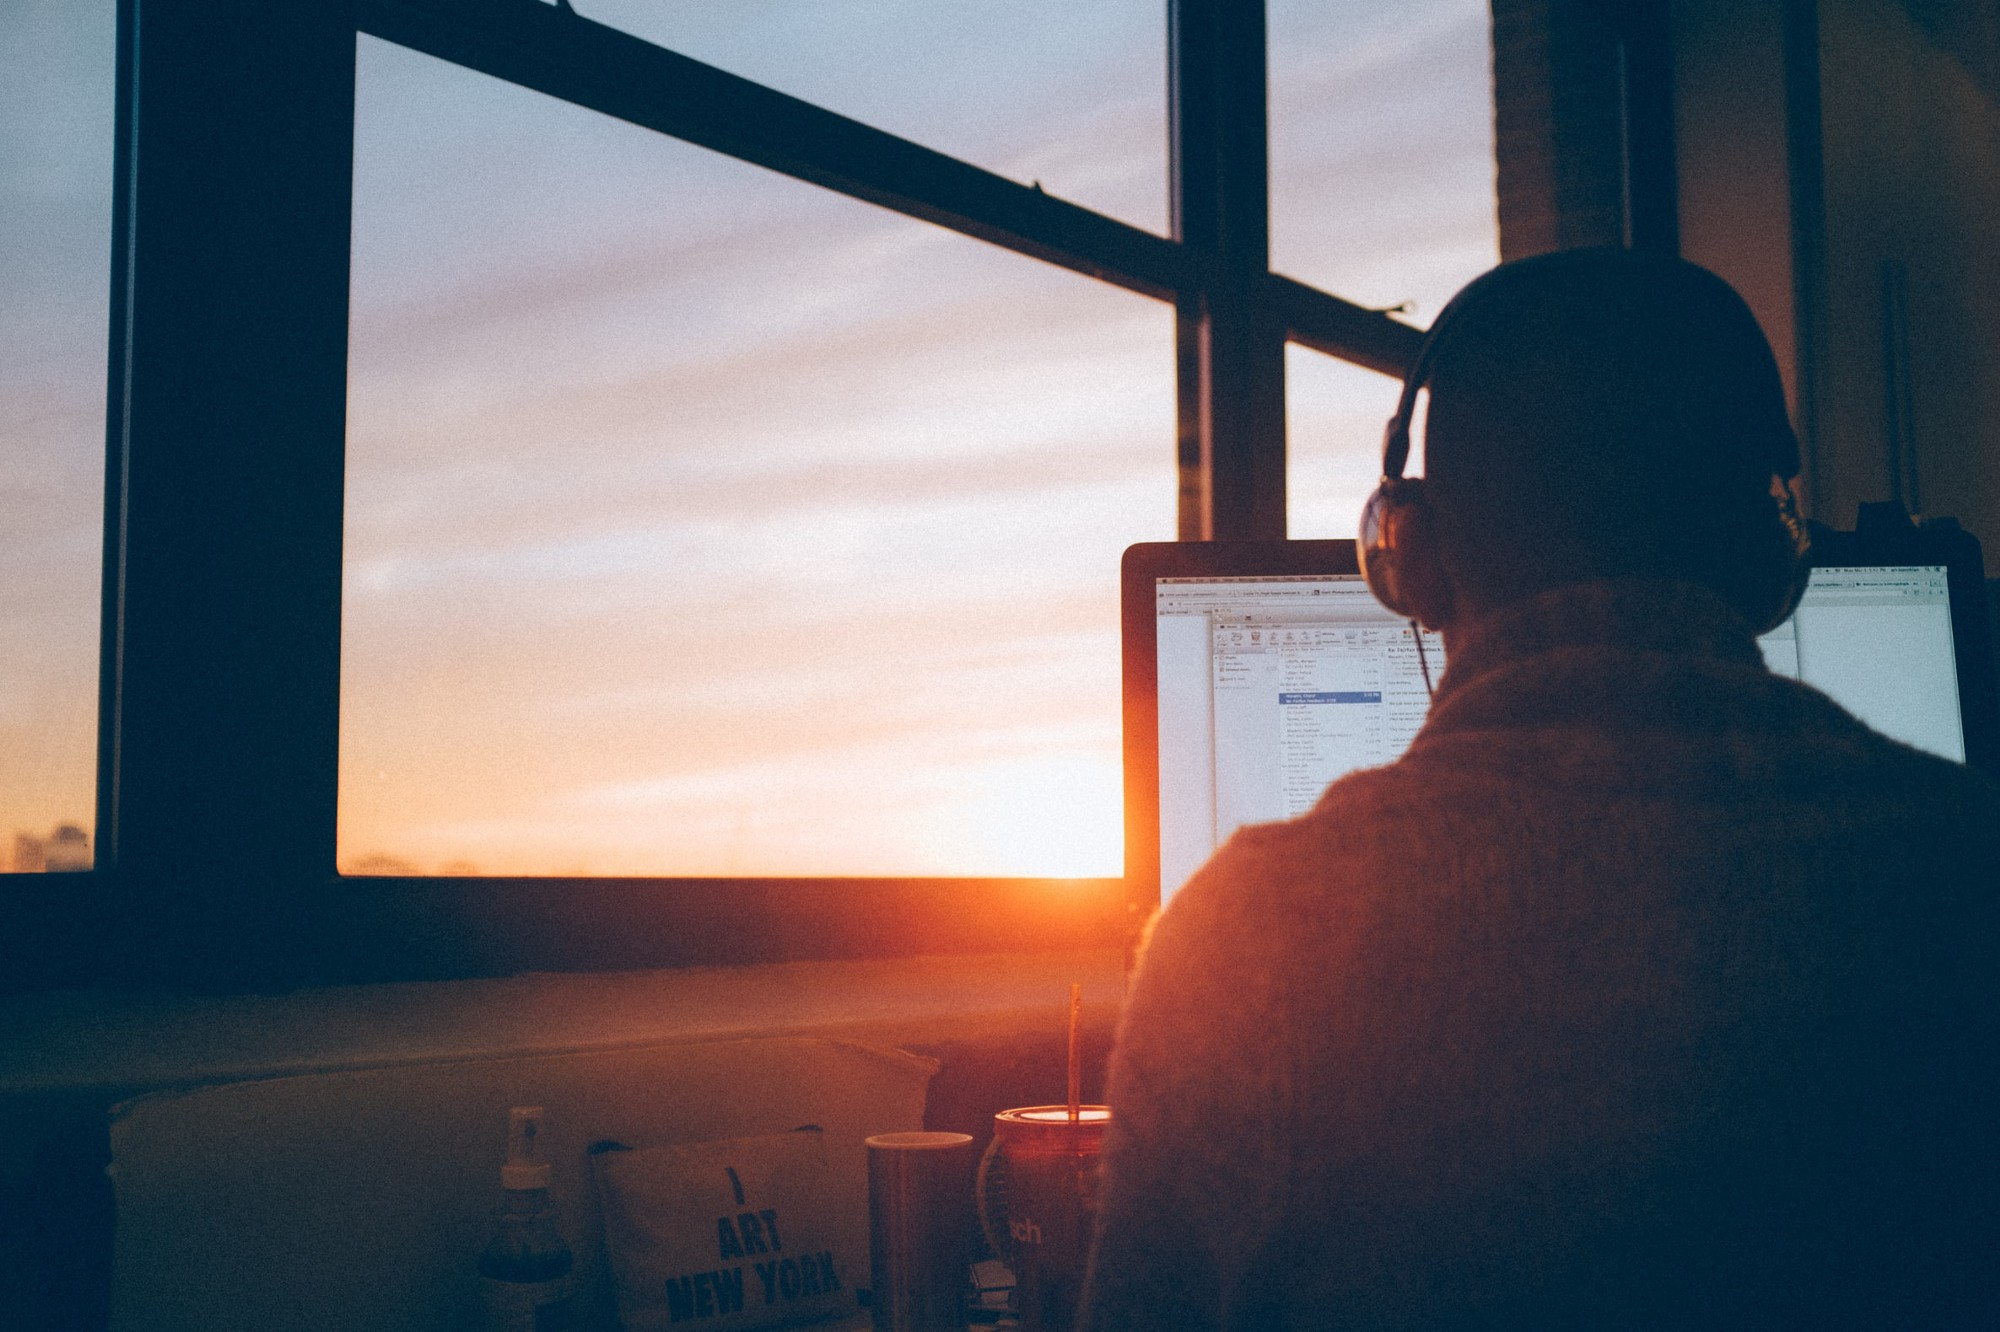 Man with headphones working on a laptop by a window at sunset.